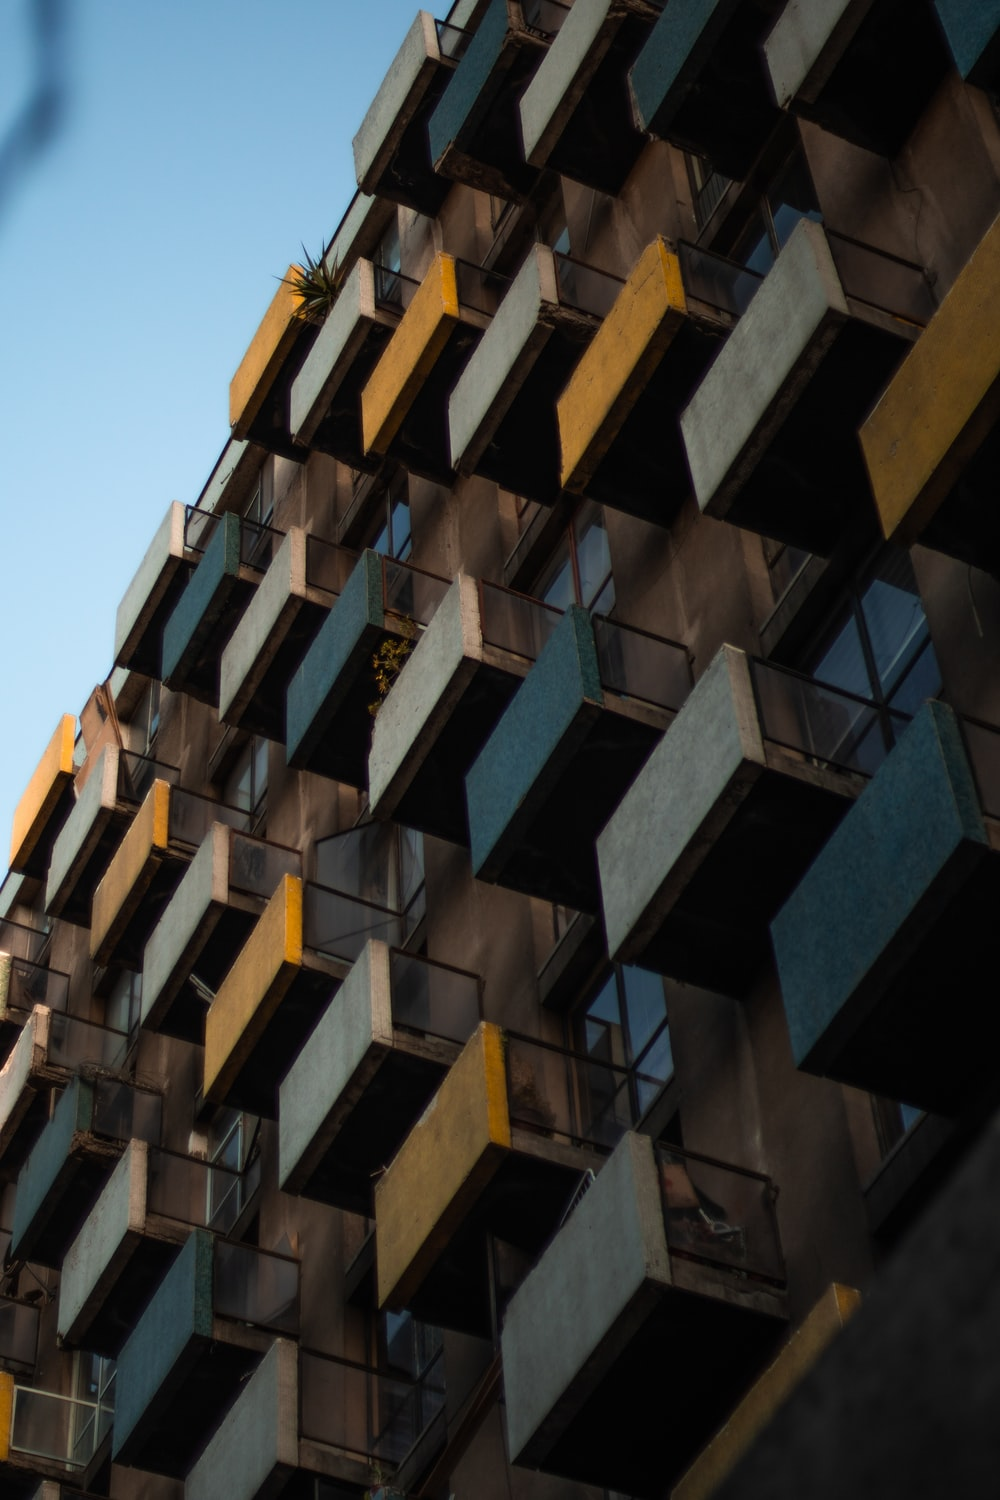 yellow and black concrete building